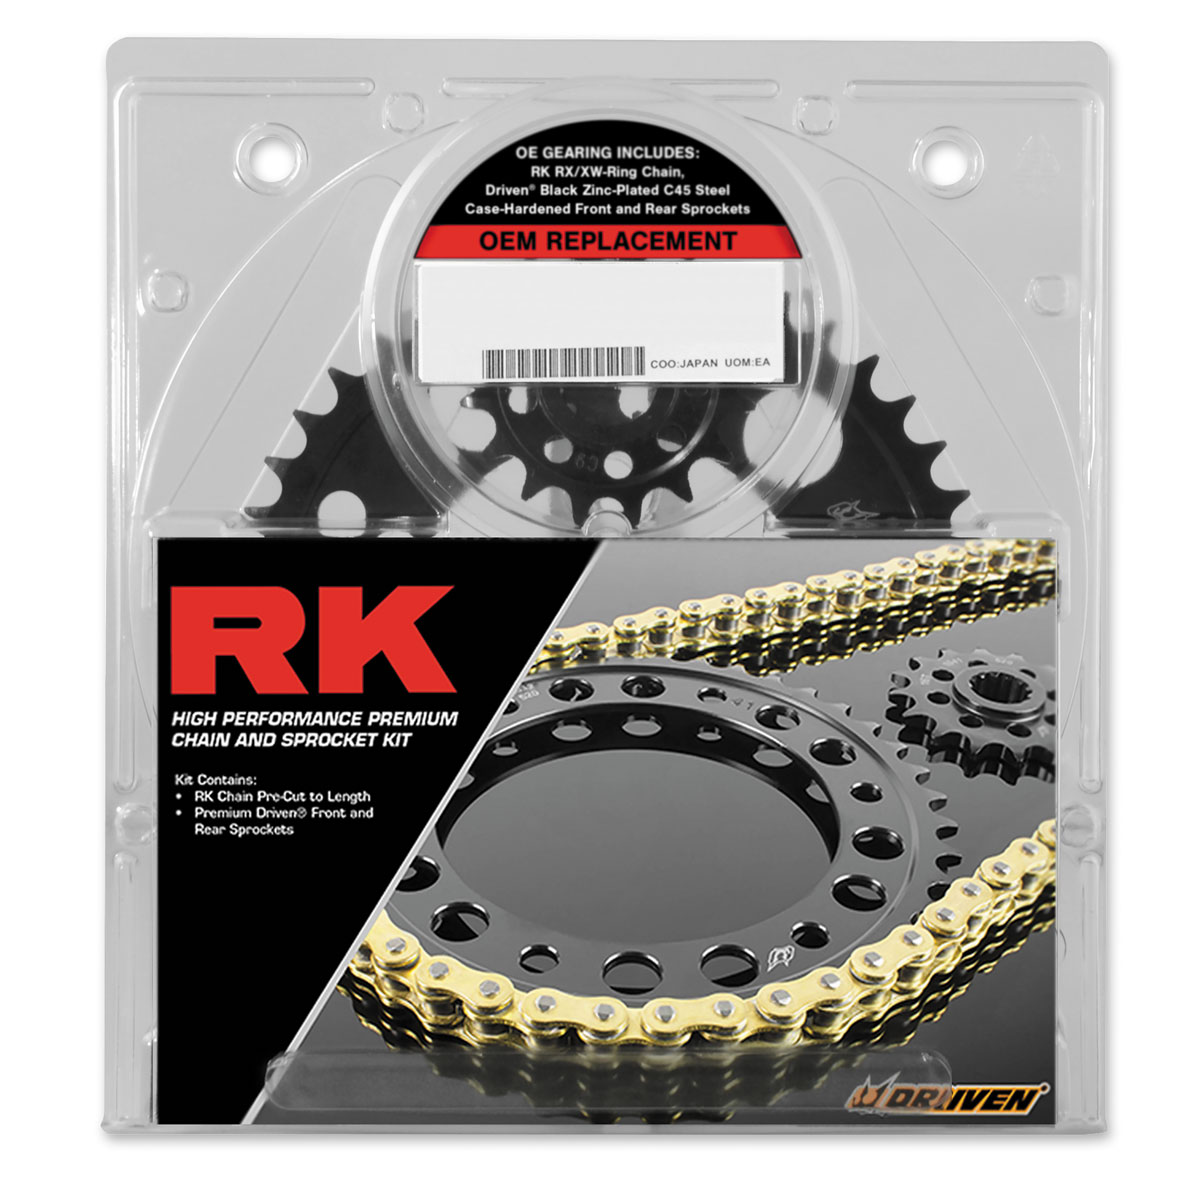 RK Chains 520 O.E.M. Replacement Chain and Sprocket Kit